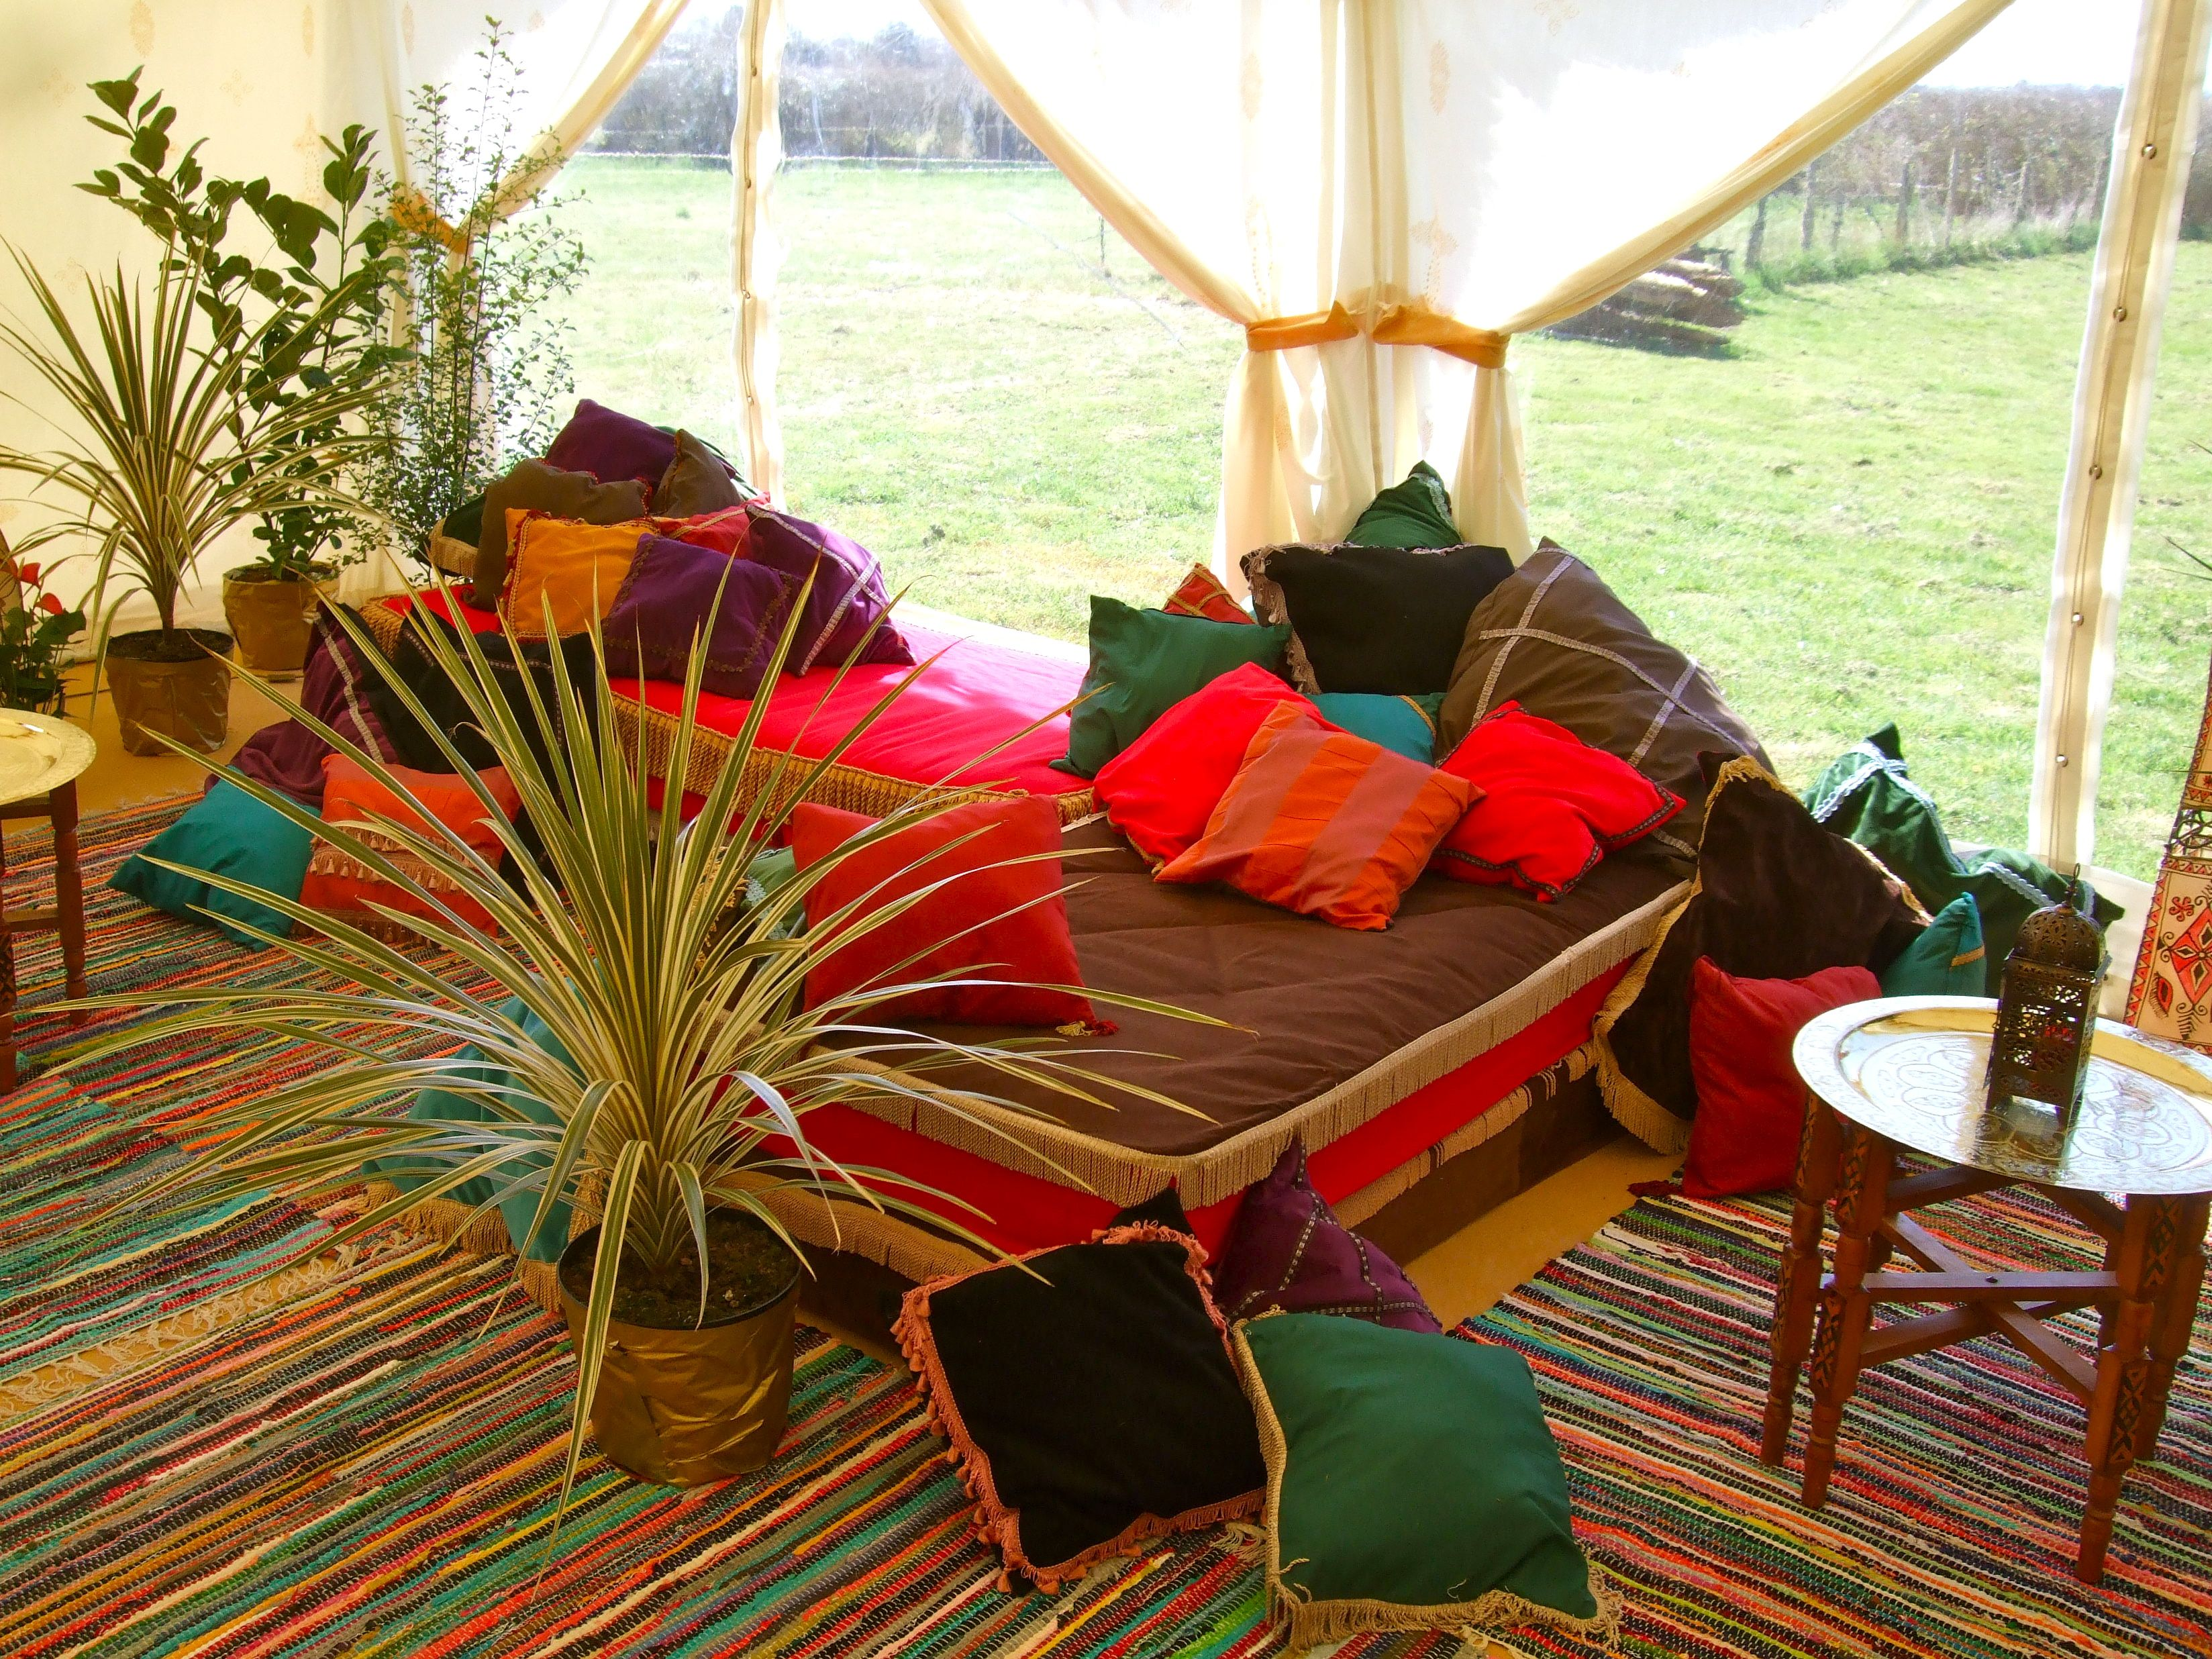 tropical decorations on bed tropical home decor ideas.htm seasons marquee hire moroccan furniture hawaiidermatology  seasons marquee hire moroccan